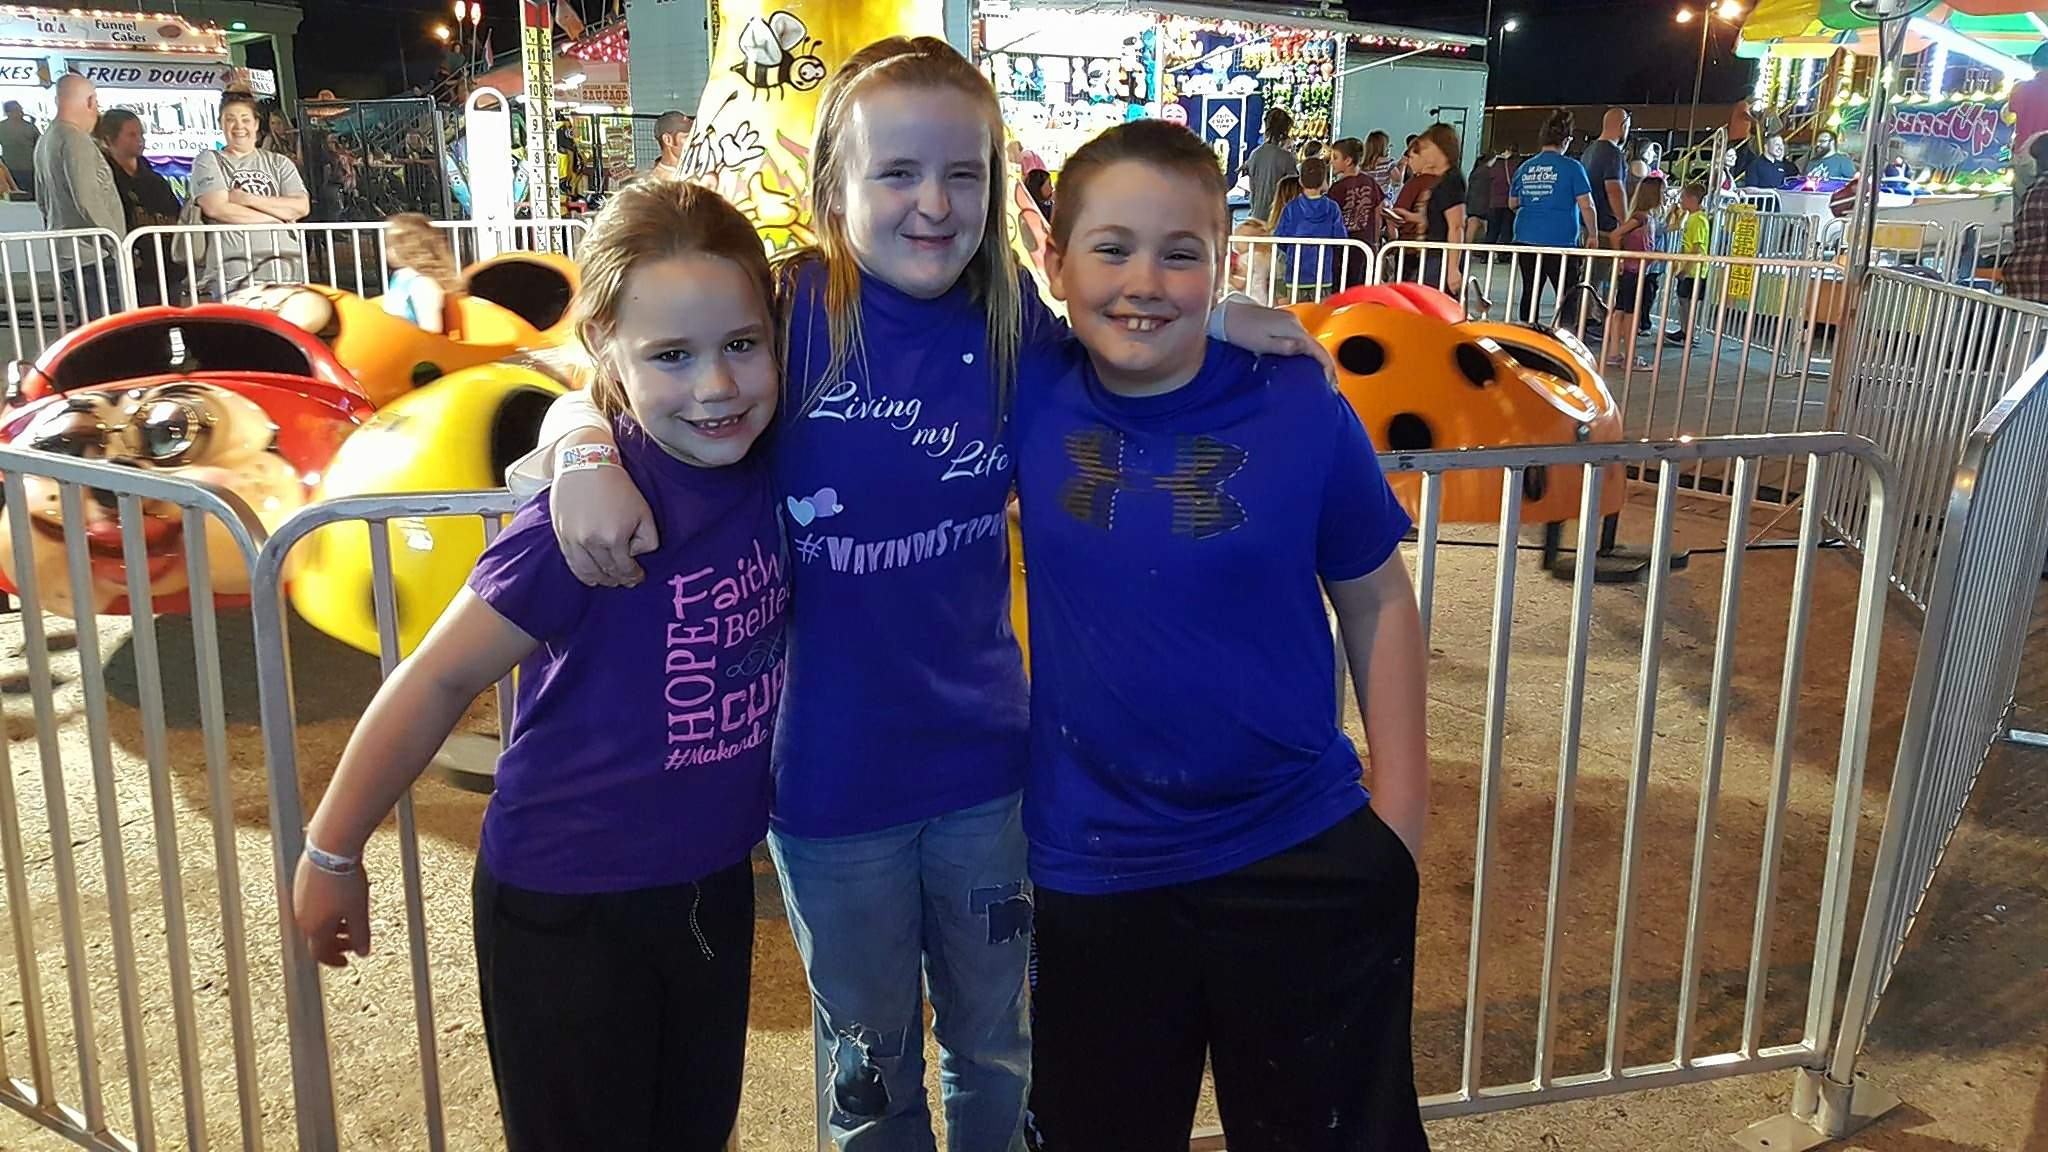 """Raylynn Alexander of Johnston City (middle) enjoyed the carnival on Friday evening courtesy of the family of Makanda Williams. The family, including Makanda's sister, Addie (left) and twin brother, Connor, treated three area children to arm bands and spending money for the carnival to kick off the """"Random Act of Kindness"""" campaign in honor of Makanda, who lost her battle to DIPG last week.  Friday would have been Makanda's 11th birthday."""